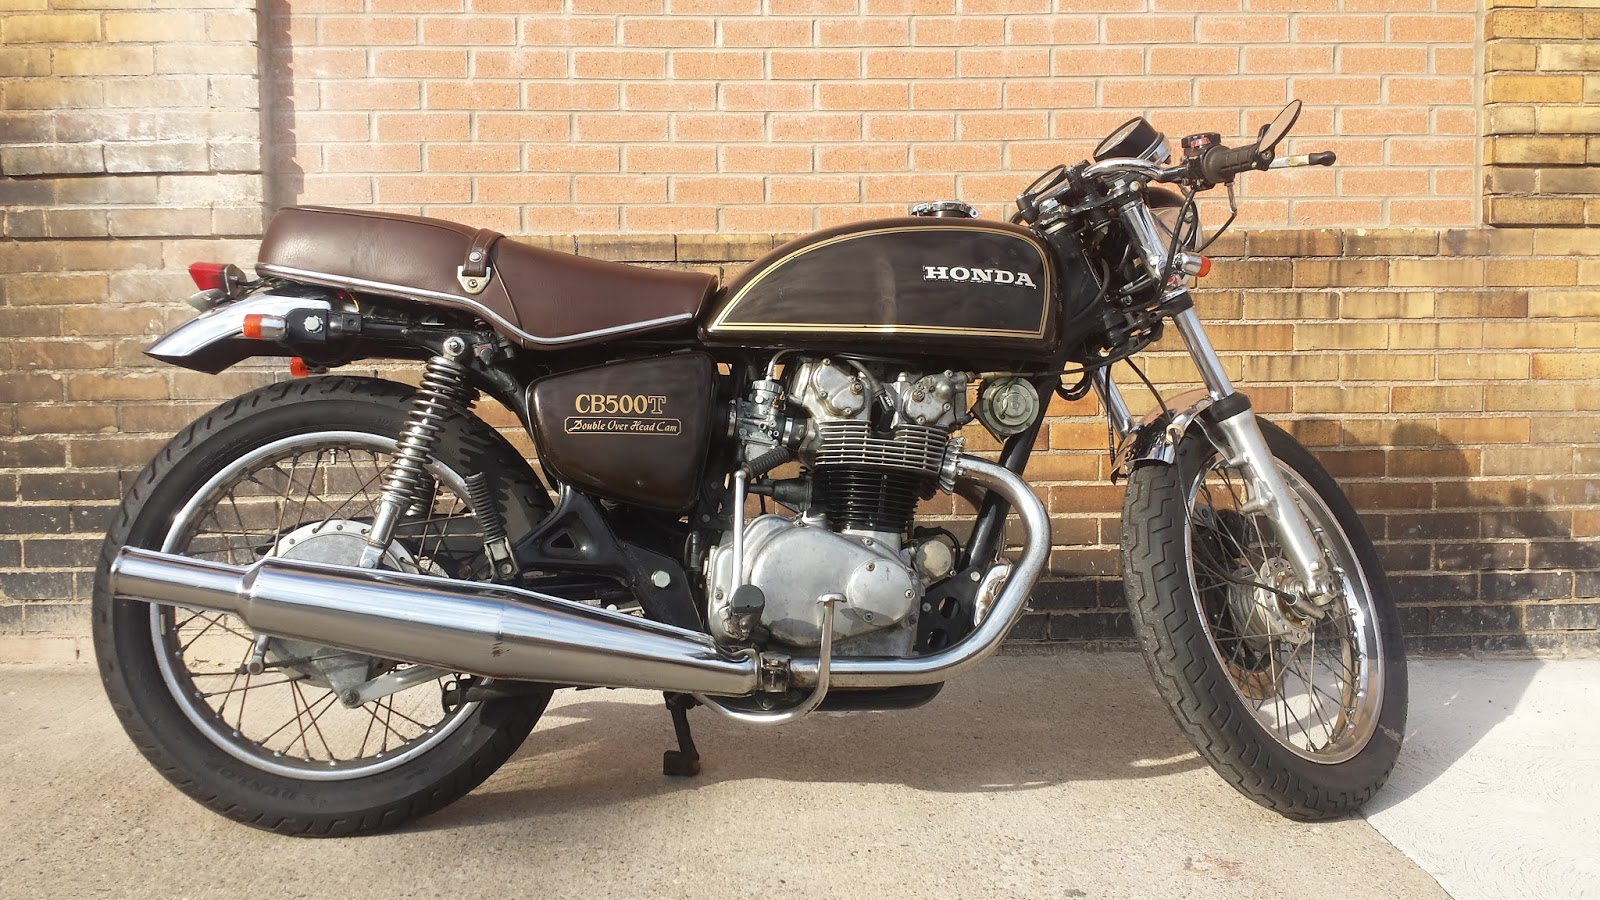 Dirt bikes for sale pittsburgh pa - Bike For Sale We Spent The Winter Restoring And Tinkering With This 1975 Honda Cb500t We Upgraded The Electronics With A Pamco Ignition System Instead Of